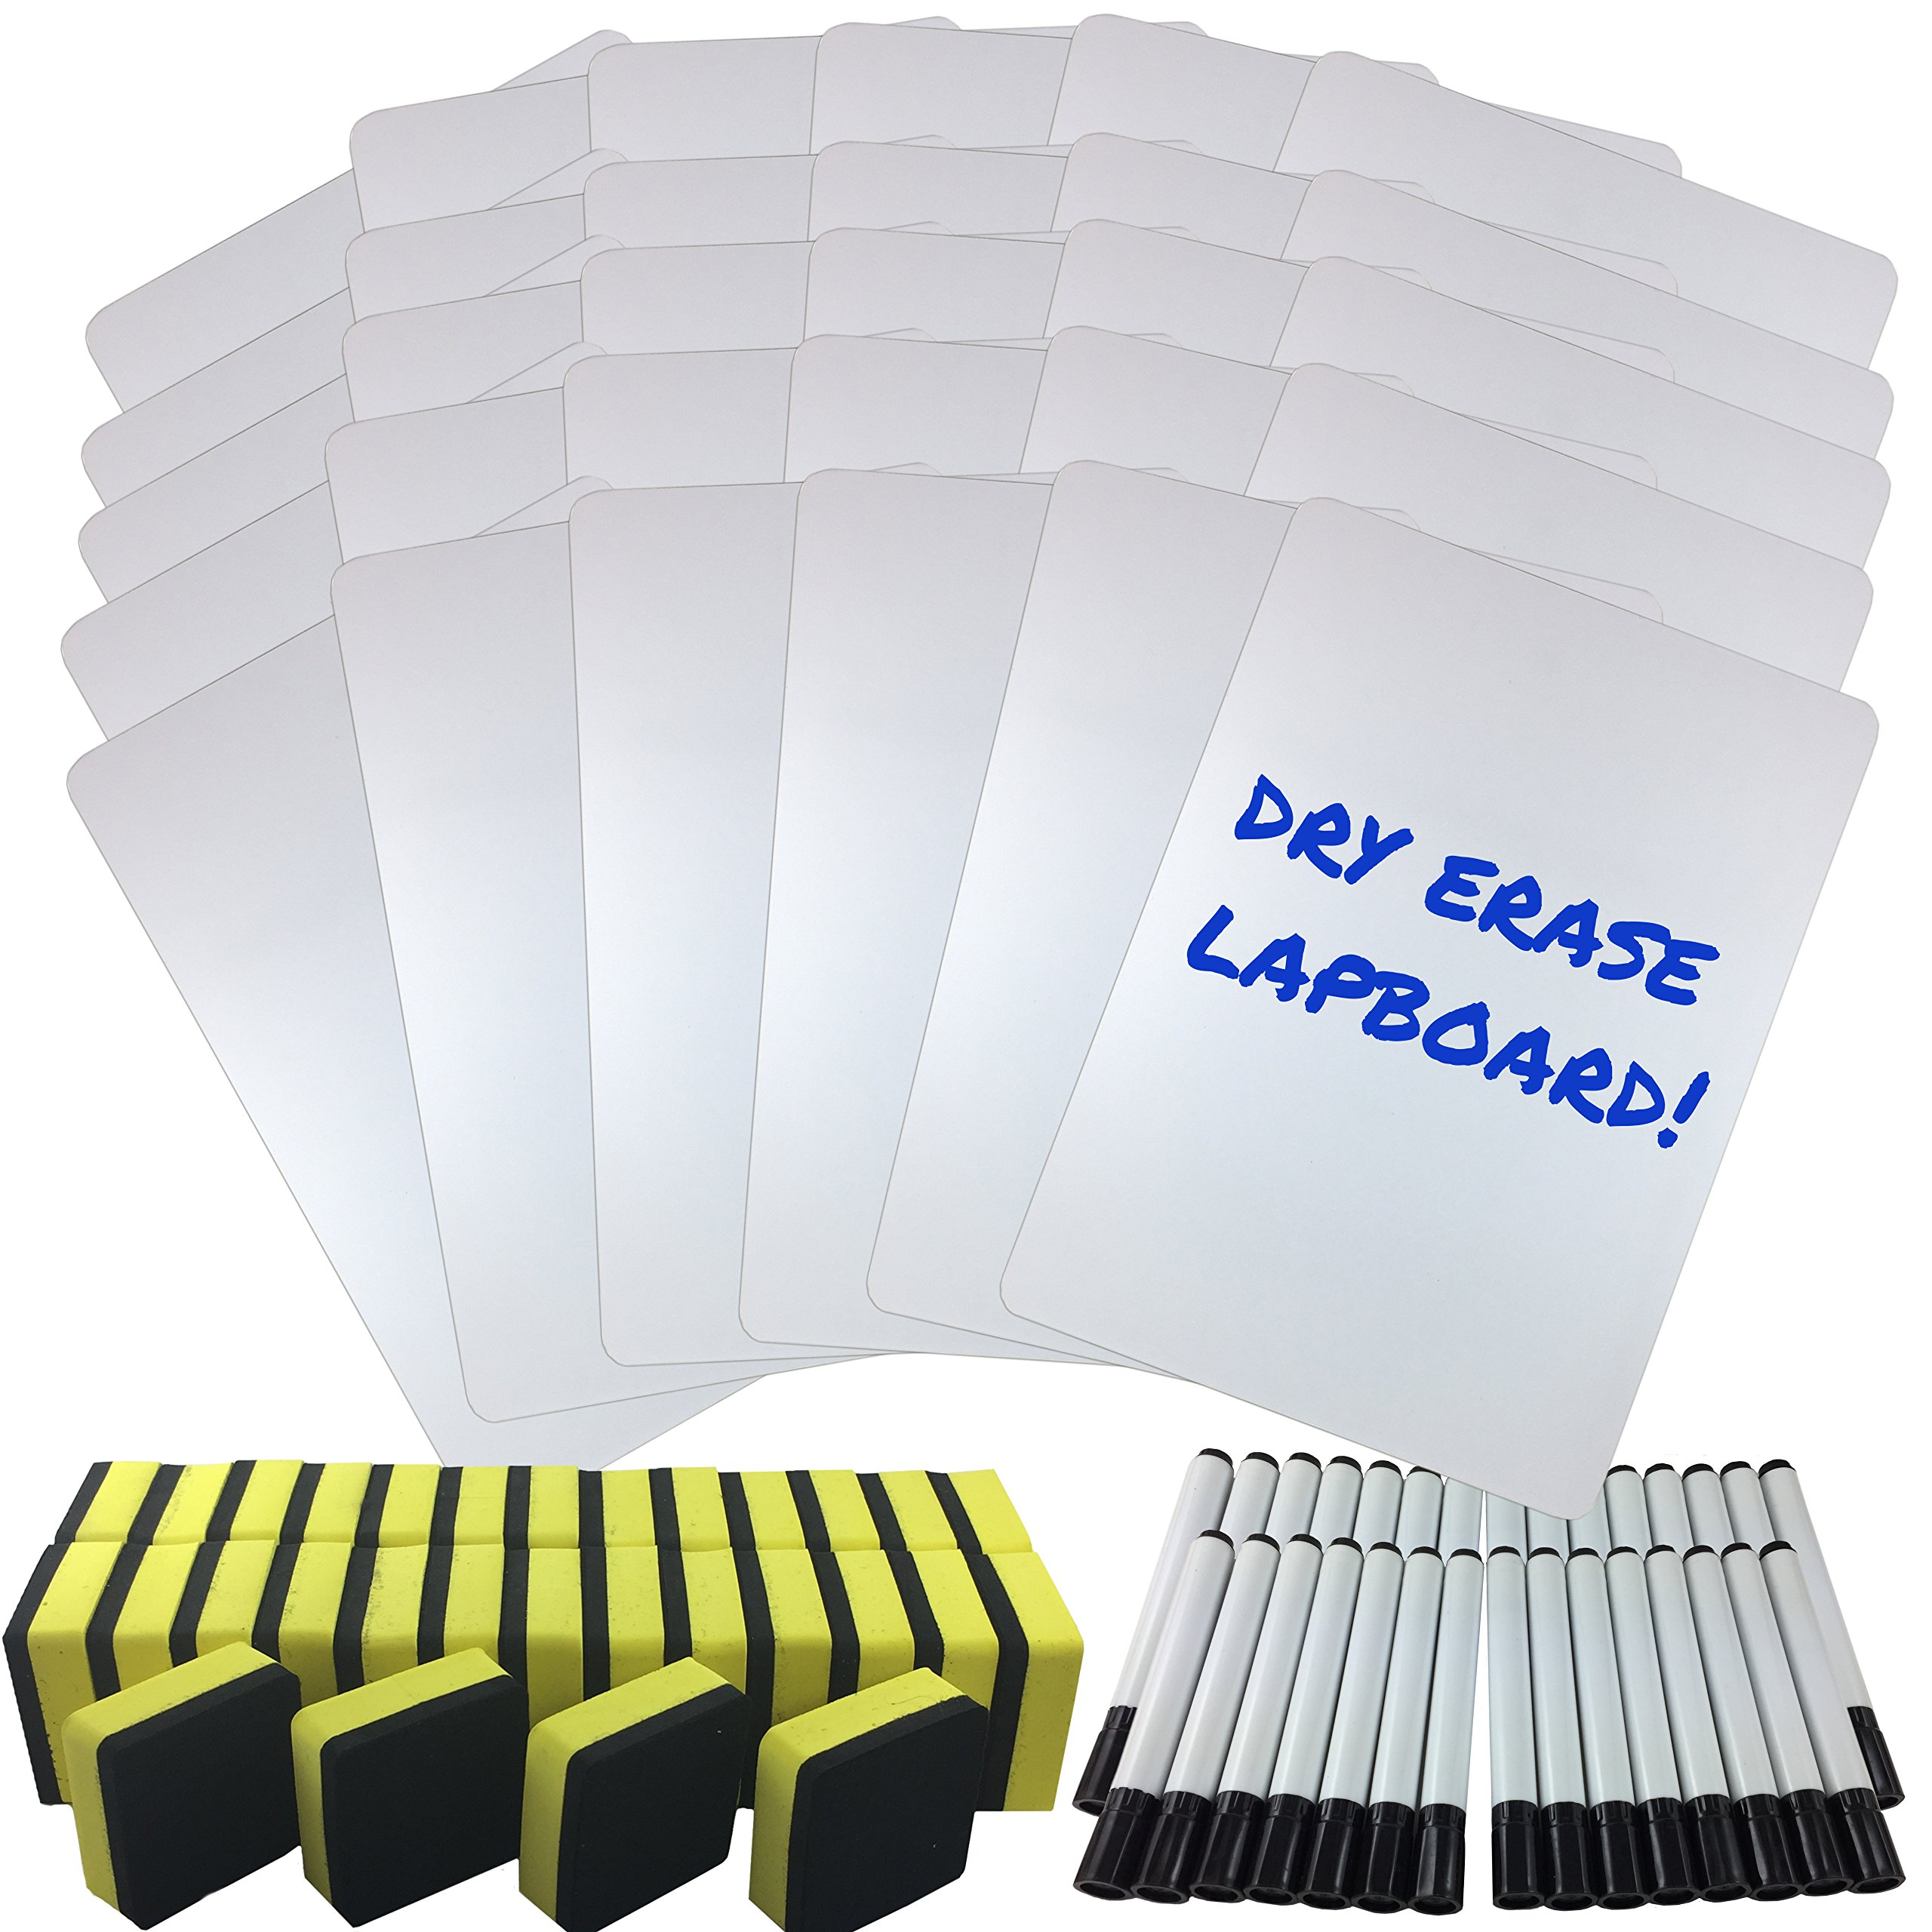 Dry Erase Lapboard Classroom Kit, Set of 30 Whiteboards, Black Dry Erase Markers and 2'' x 2'' Erasers